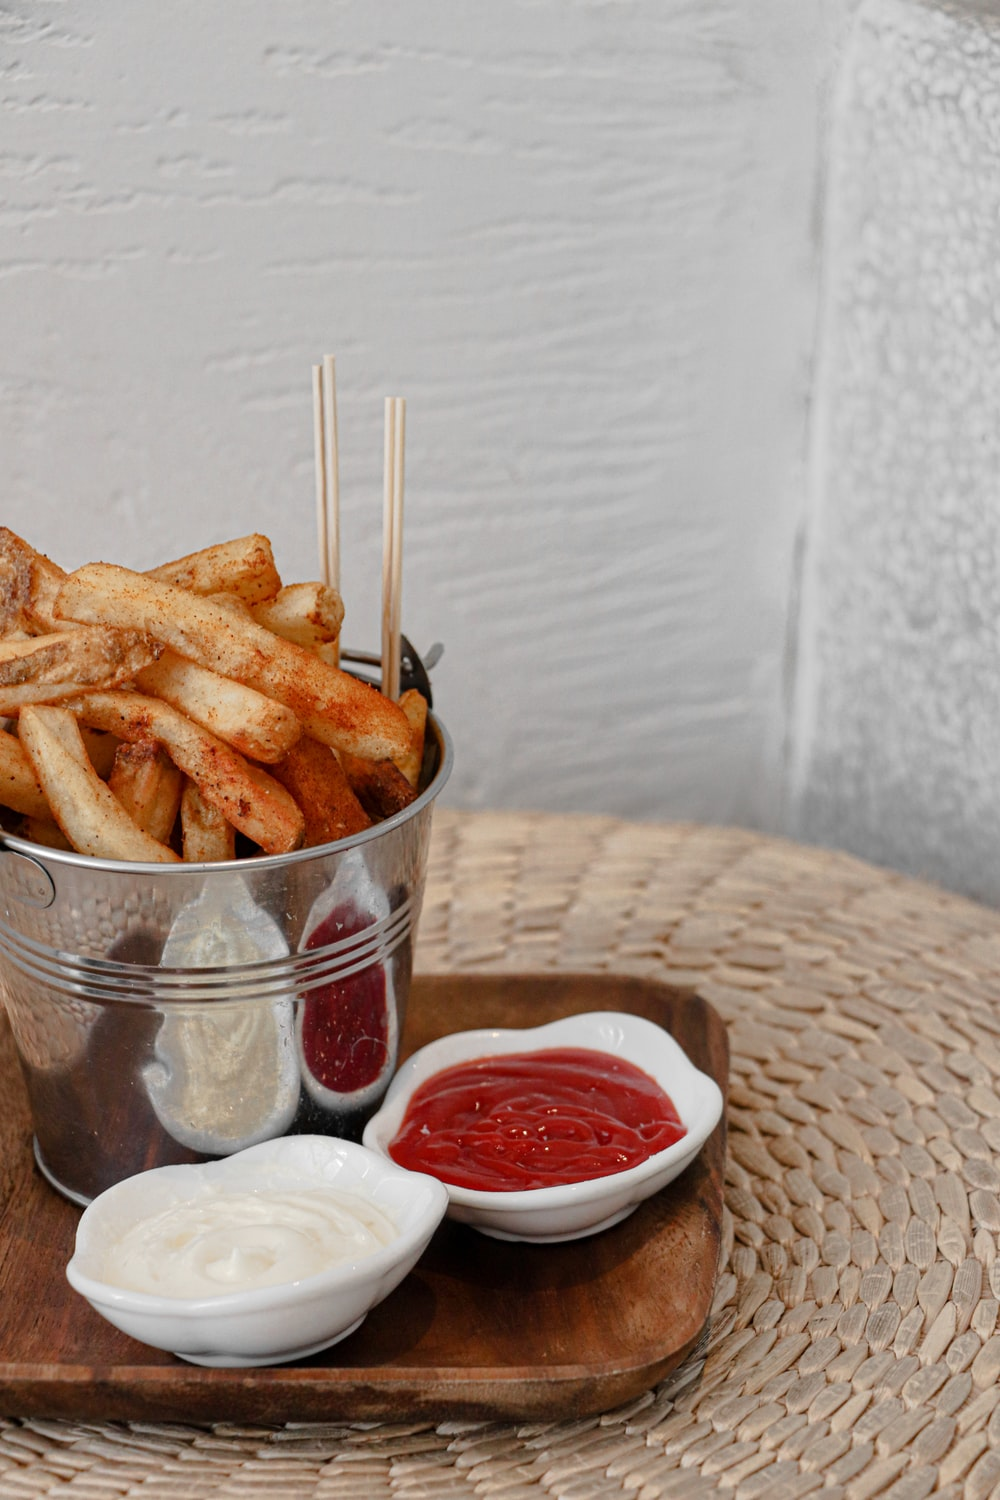 potato fries in brown woven basket